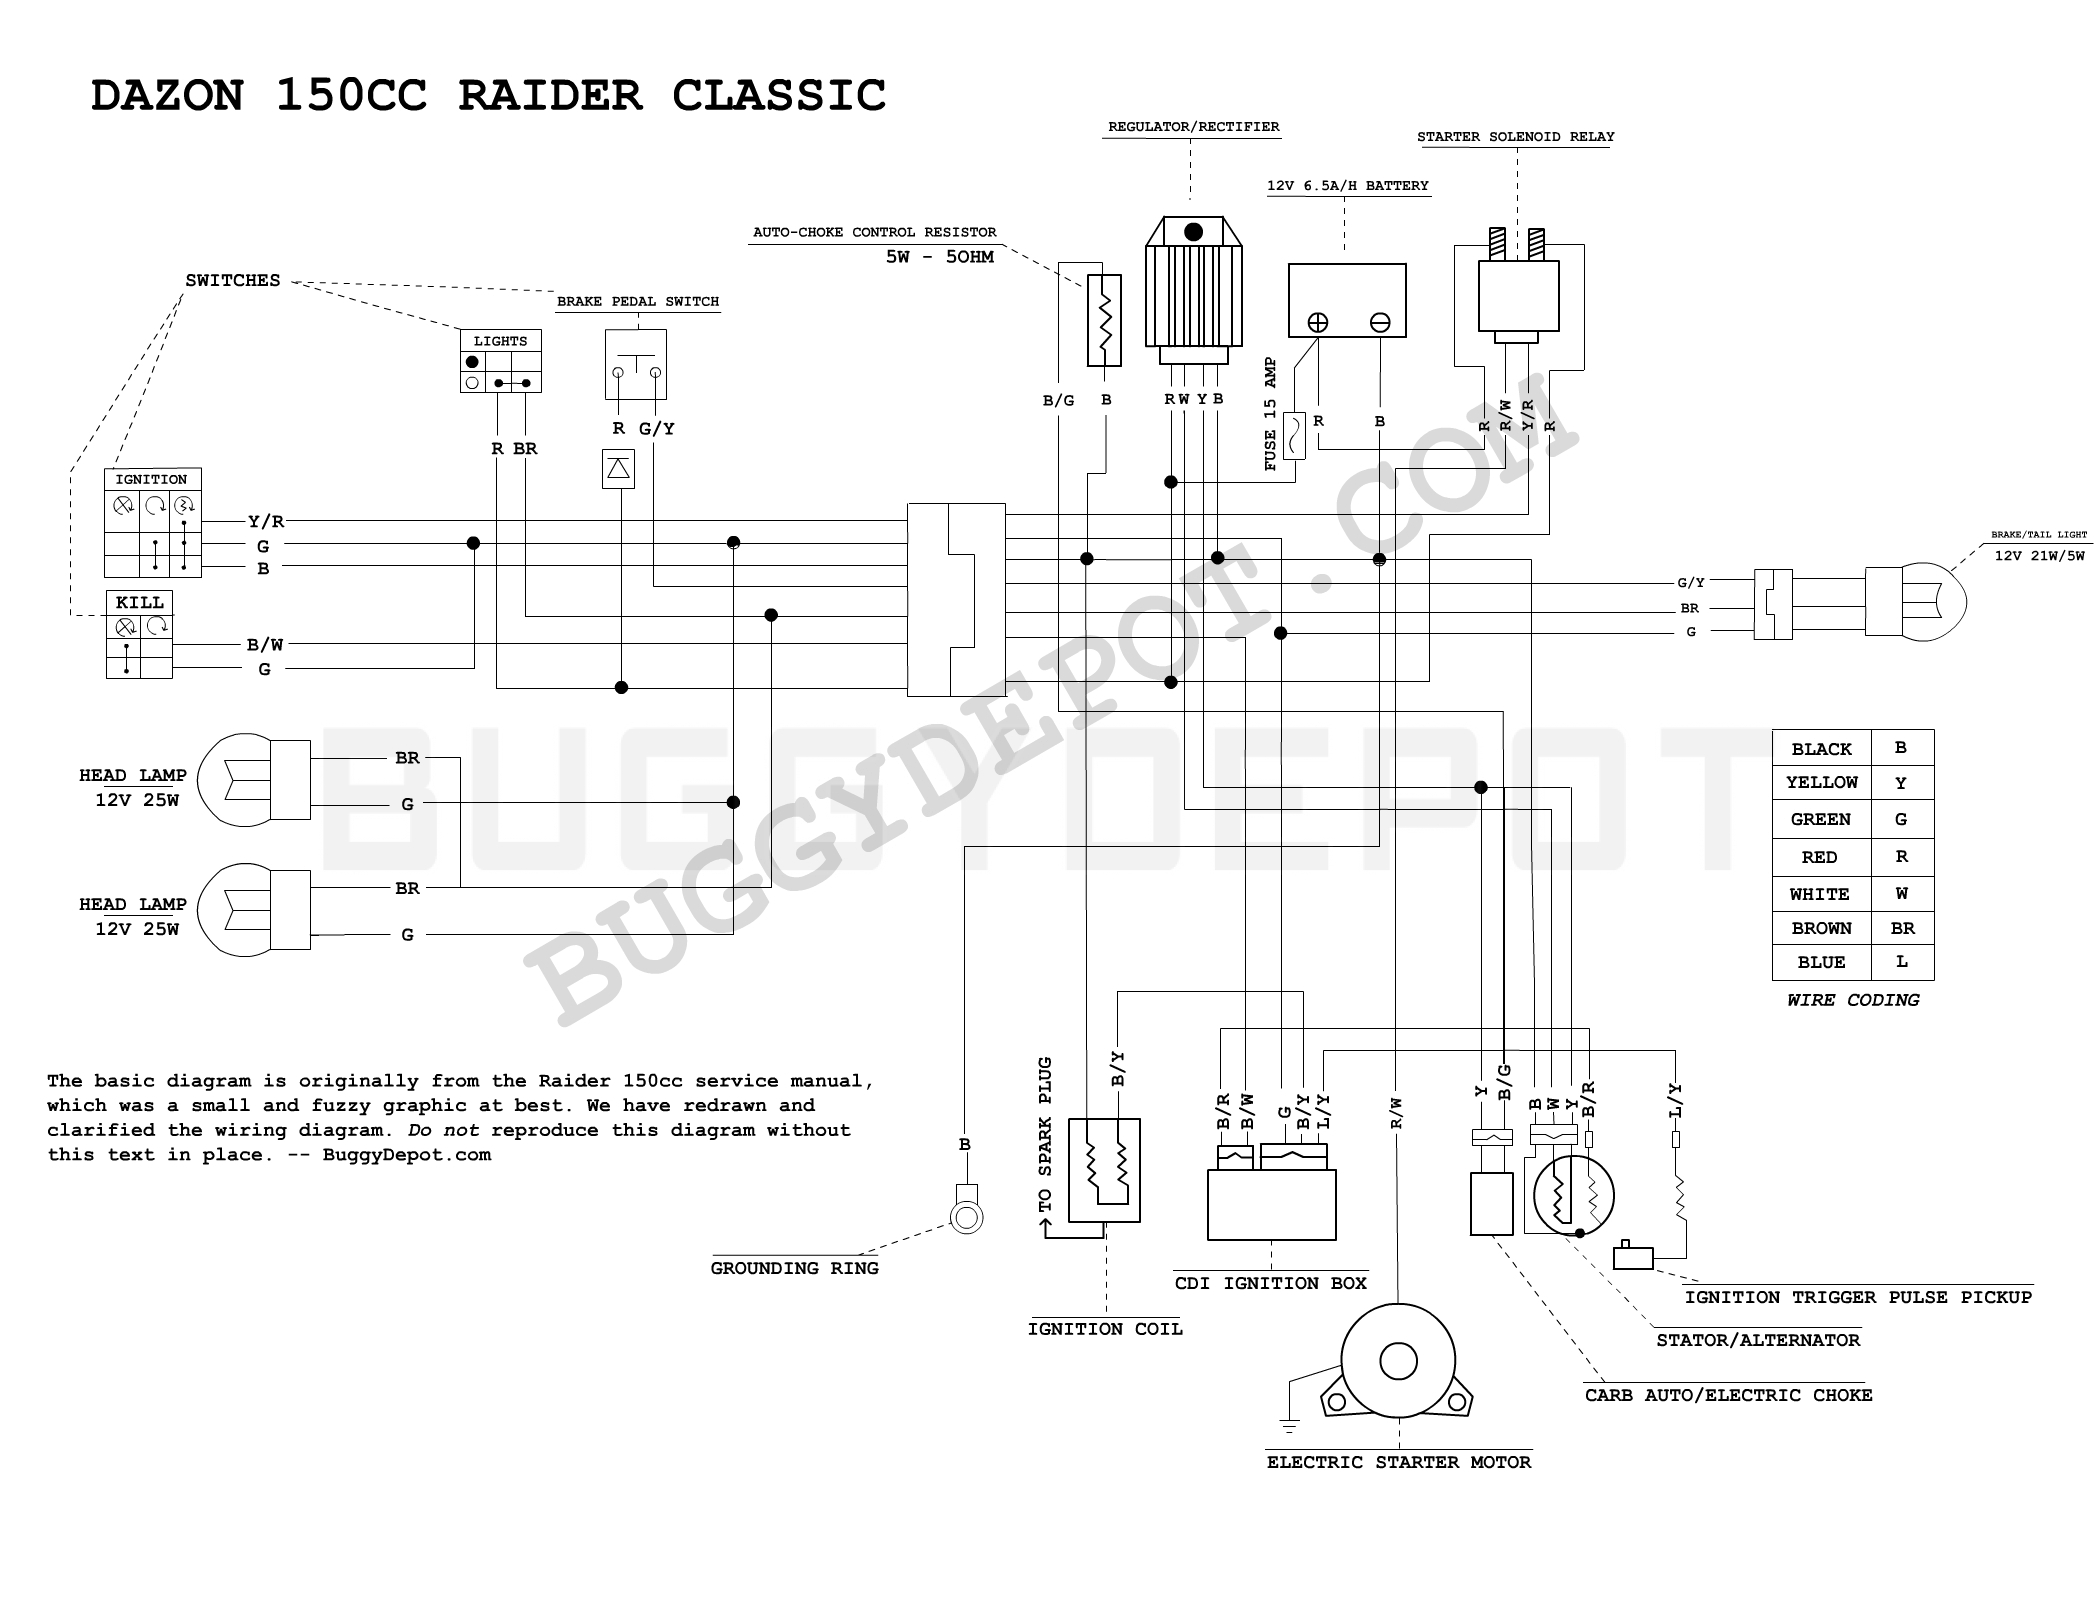 article_33_1278205207 crossfire 150r wiring diagram buggy depot technical center crossfire 150r wiring diagram at creativeand.co